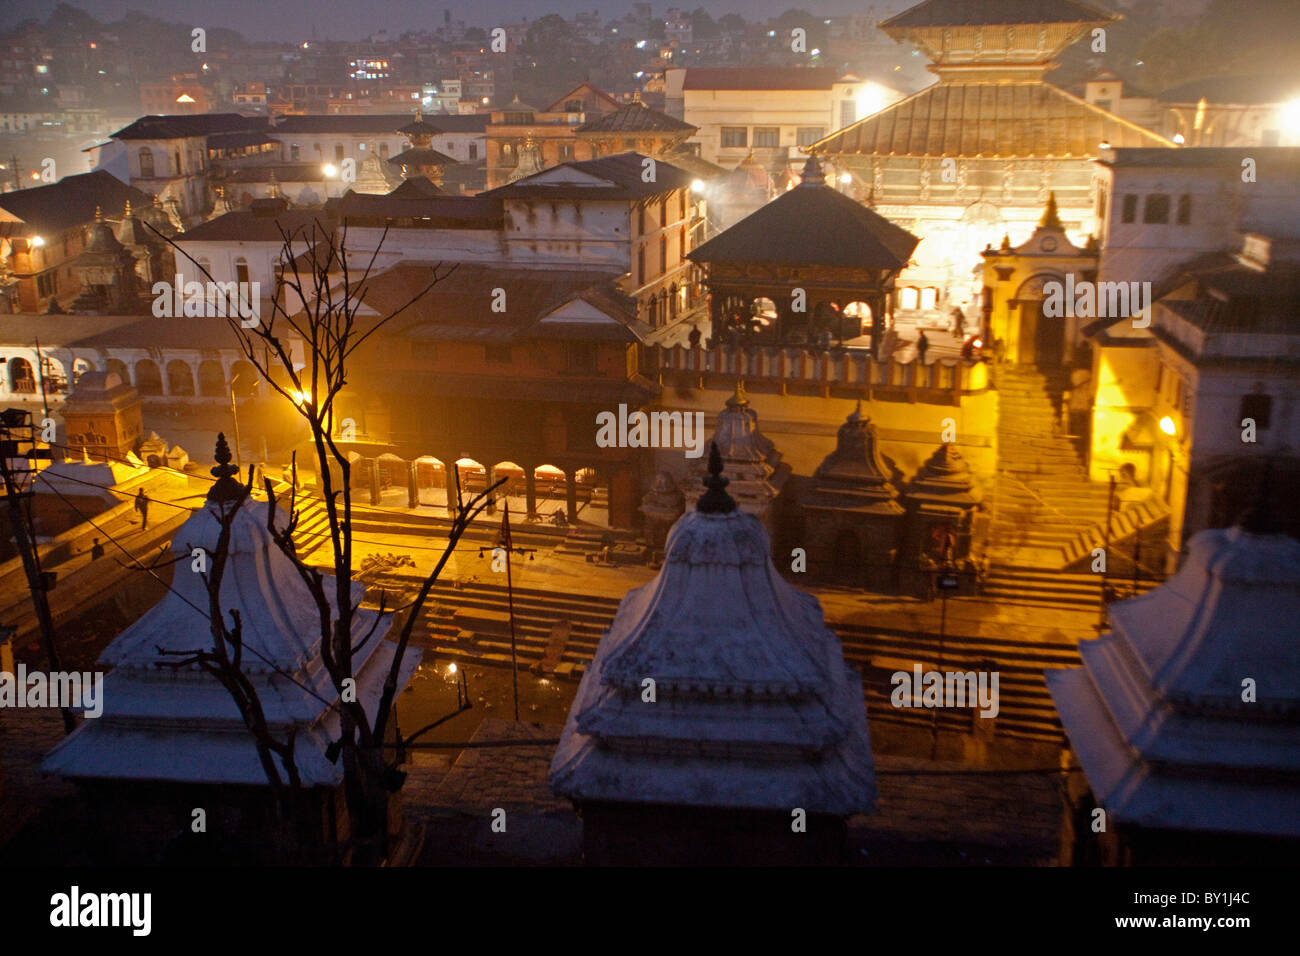 Nepal, Kathmandu, early morning at the Pashupatinath Temple on the banks of the Bagmati River one of the largest - Stock Image